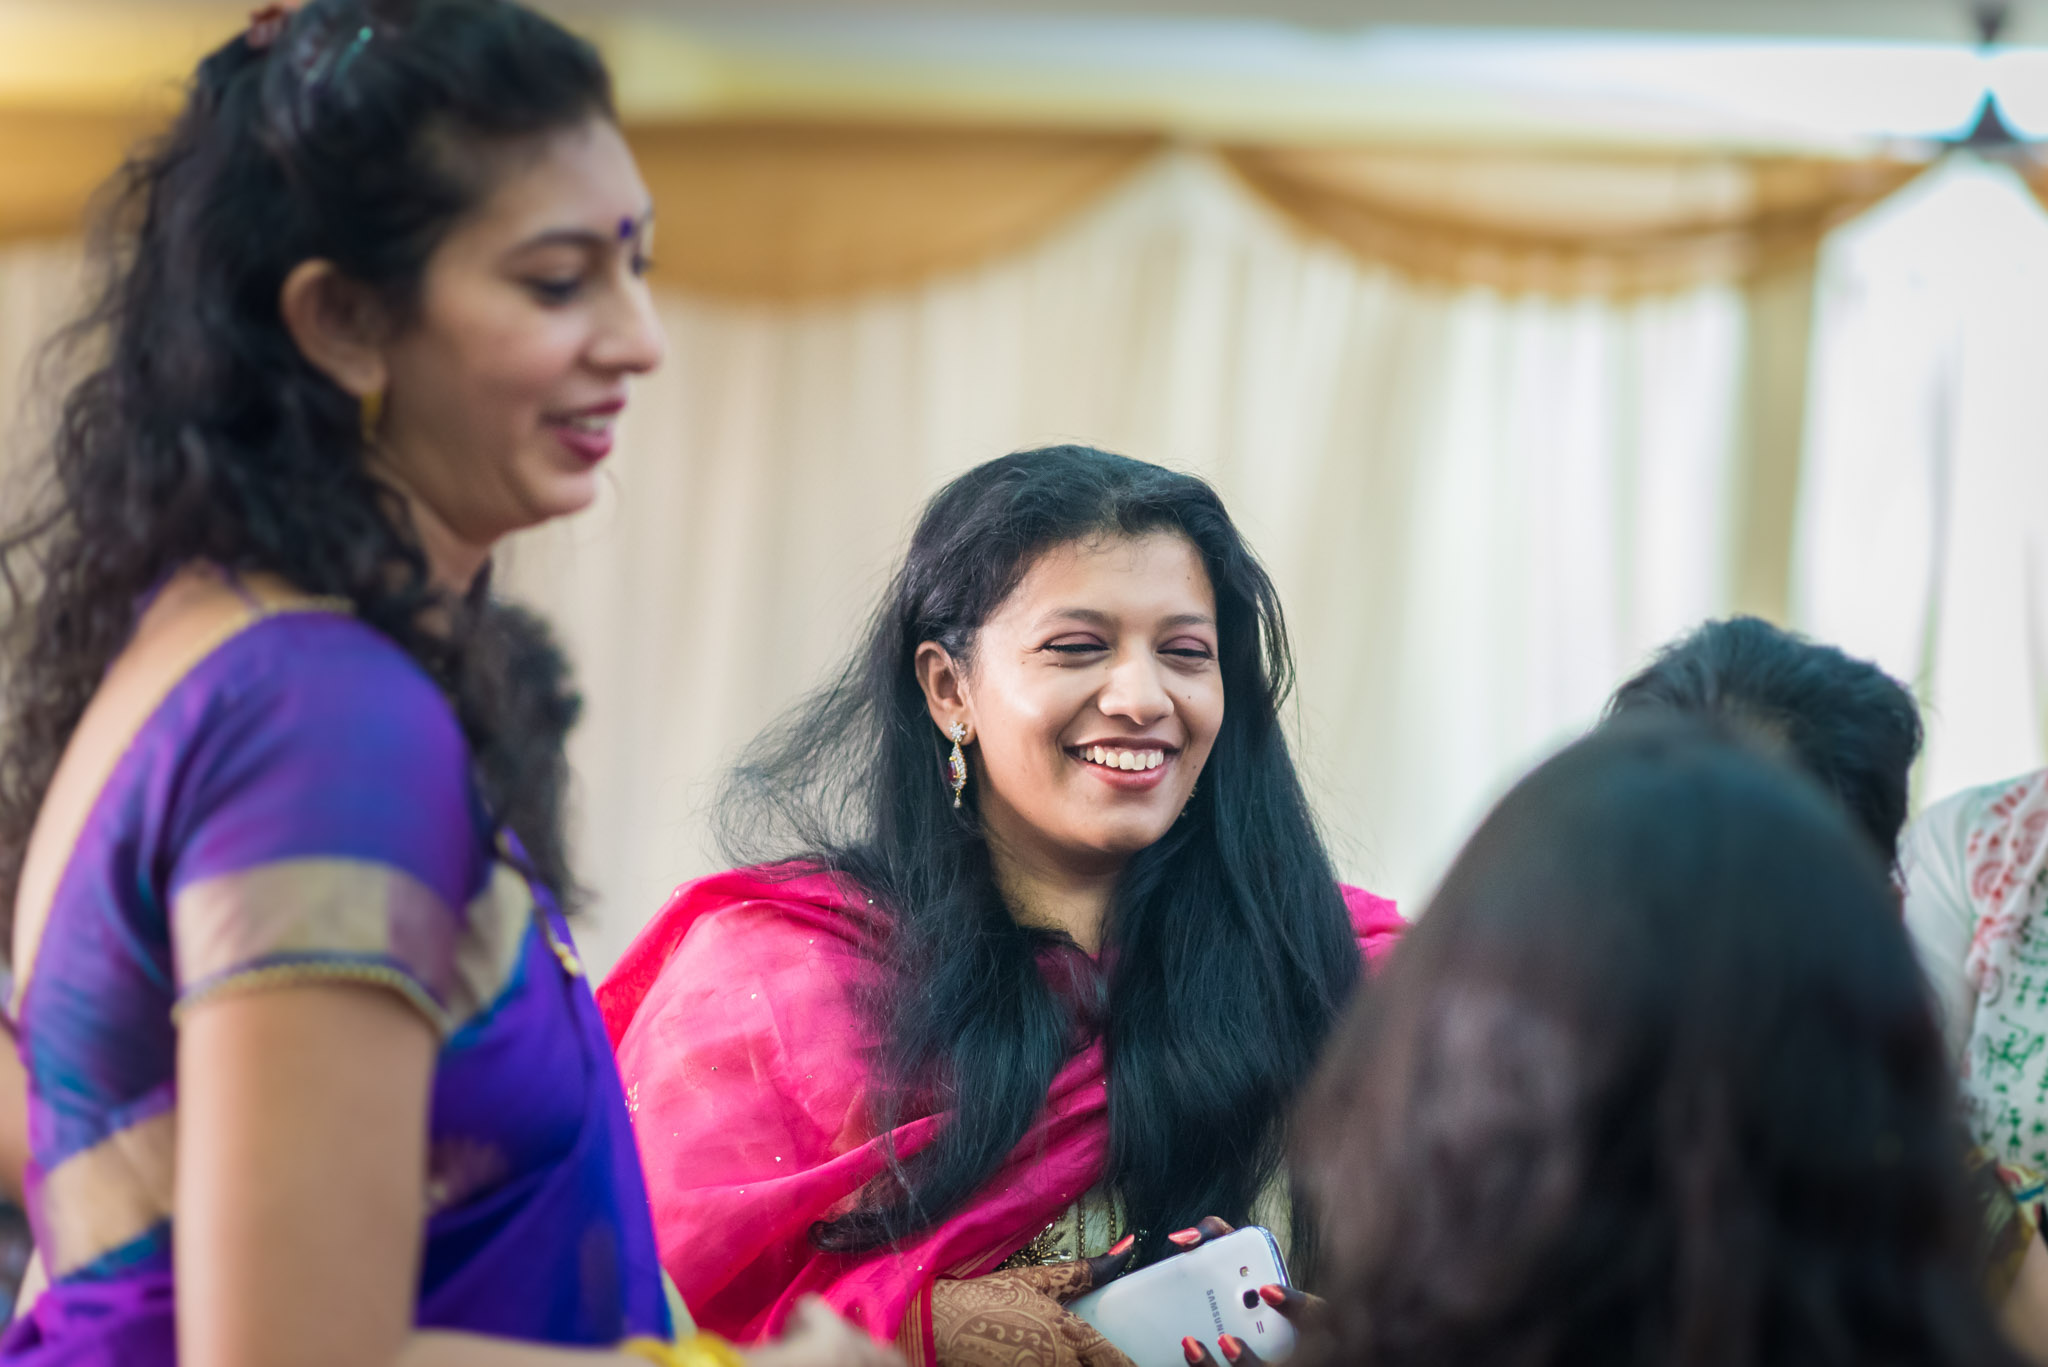 WhatKnot-Candid-Wedding-Photography-Mumbai-Bangalore-93